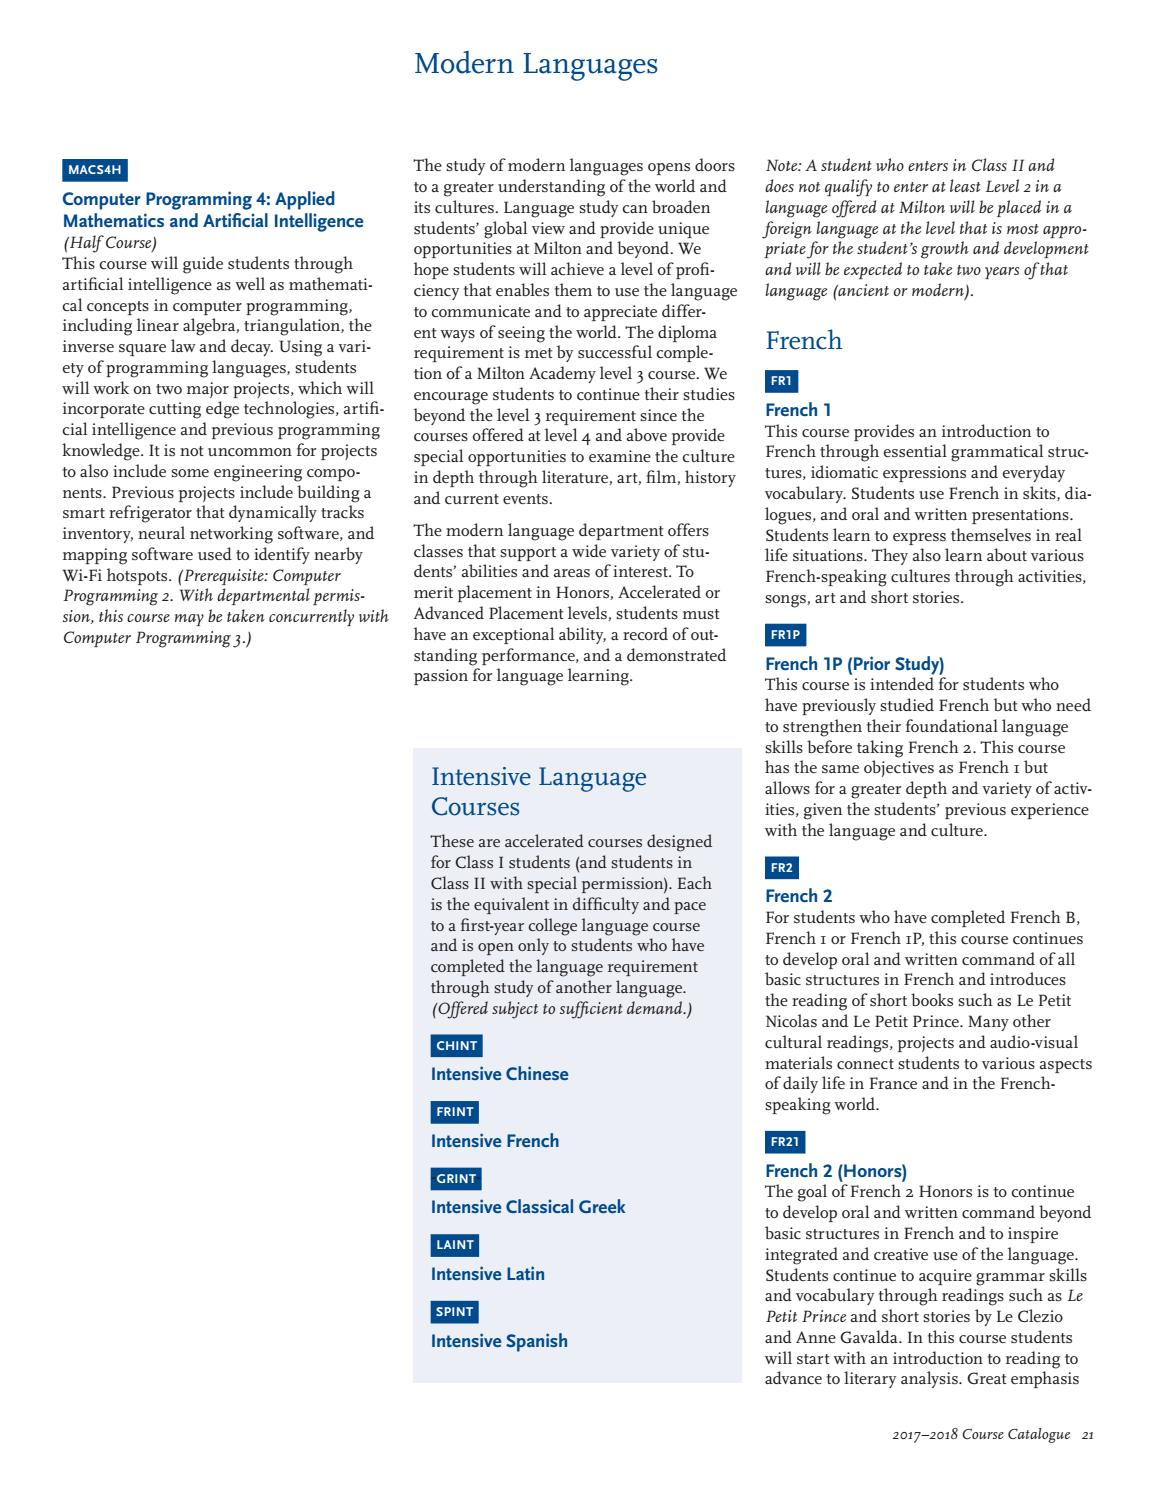 Course Catalogue, 2017–2018 by Milton Academy - issuu